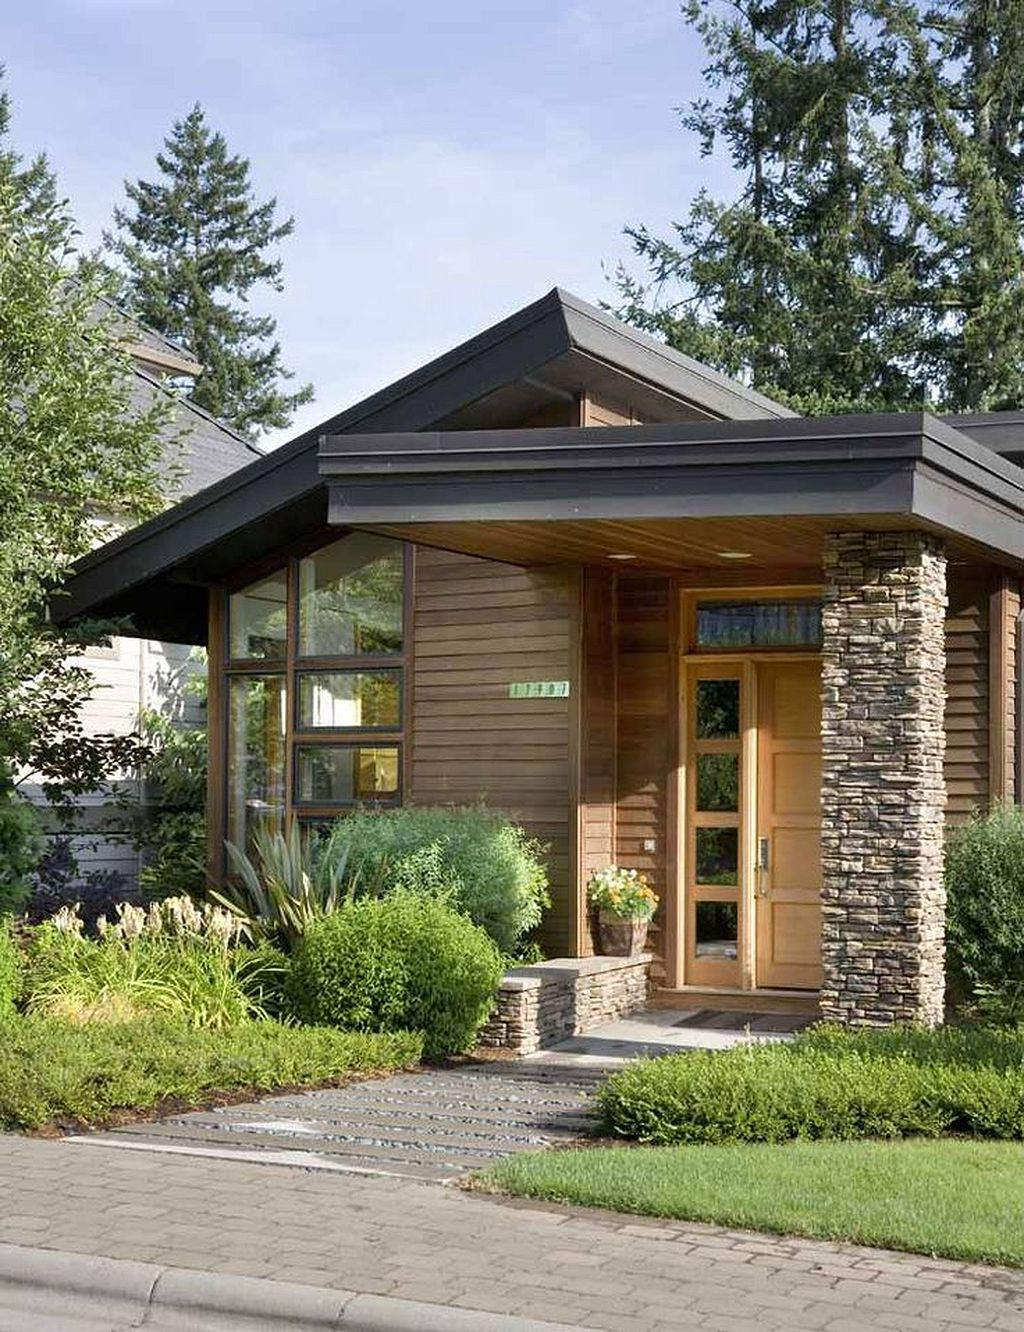 Pin By Amber Bond Morgan On Tiny Home Inspiration Flat Roof House Designs Small House Design Architecture Small Contemporary House Plans